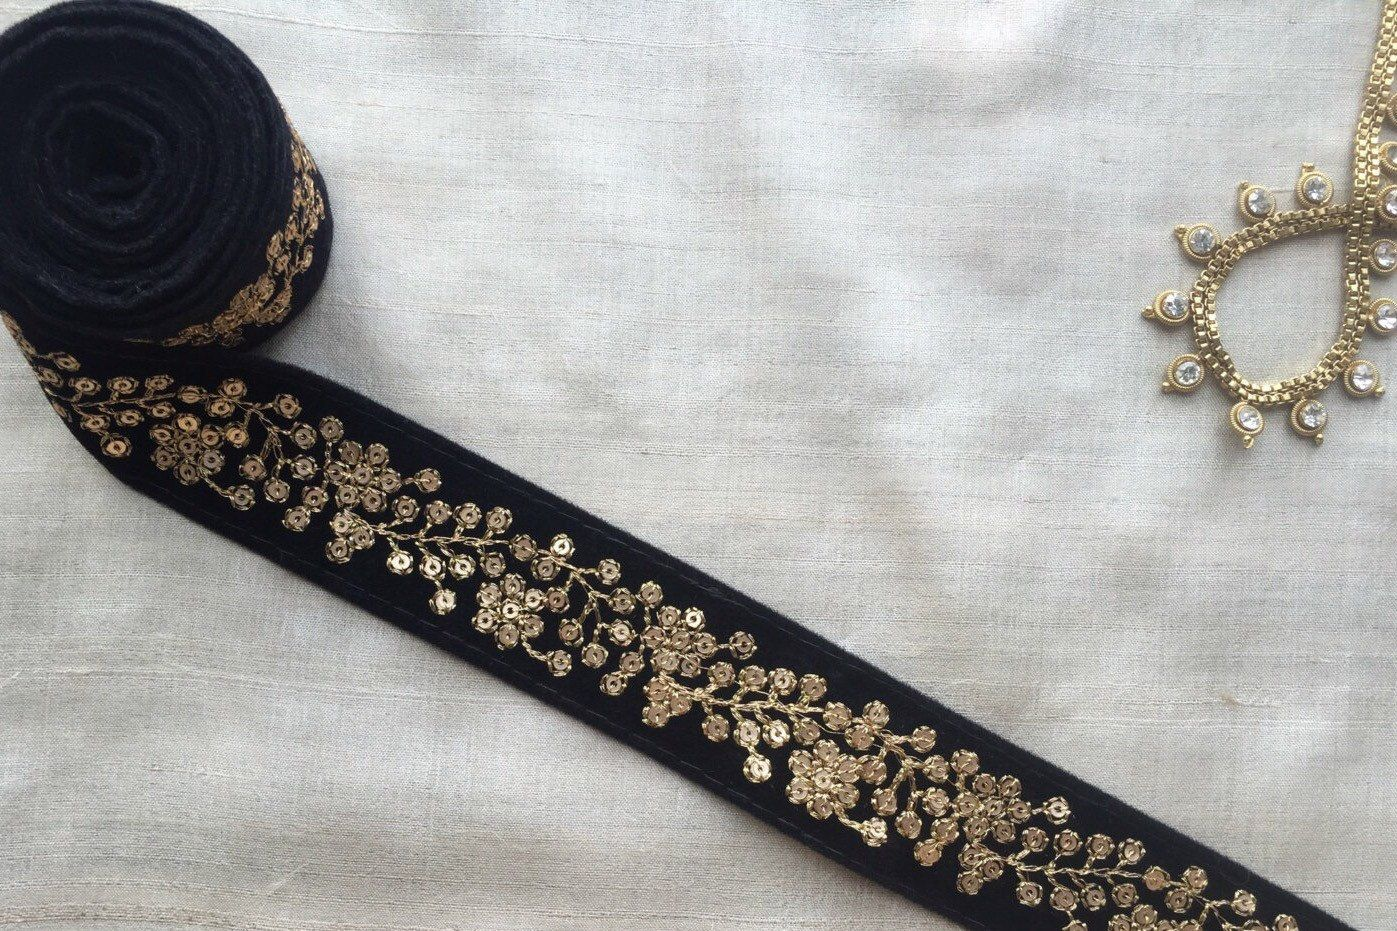 SOLD by METRE ATTRACTIVE INDIAN LEAF EMBROIDERY LACE TRIM ON VELVET SLIM GREEN